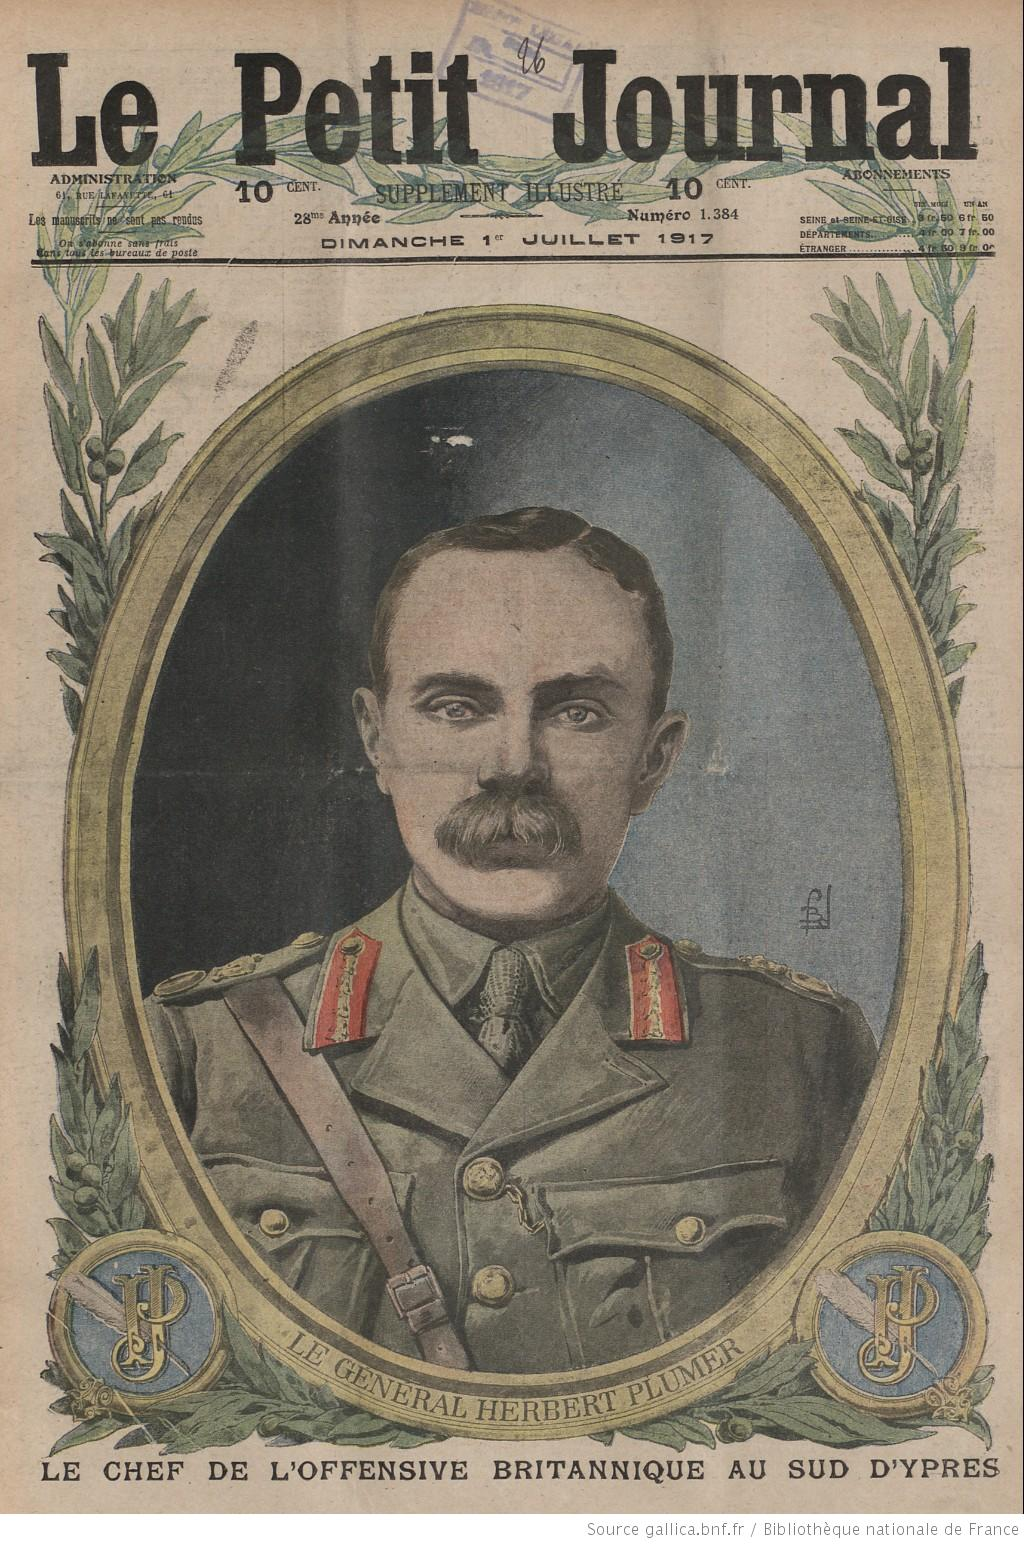 LPJ Illustre 1917-07-01 A.jpg